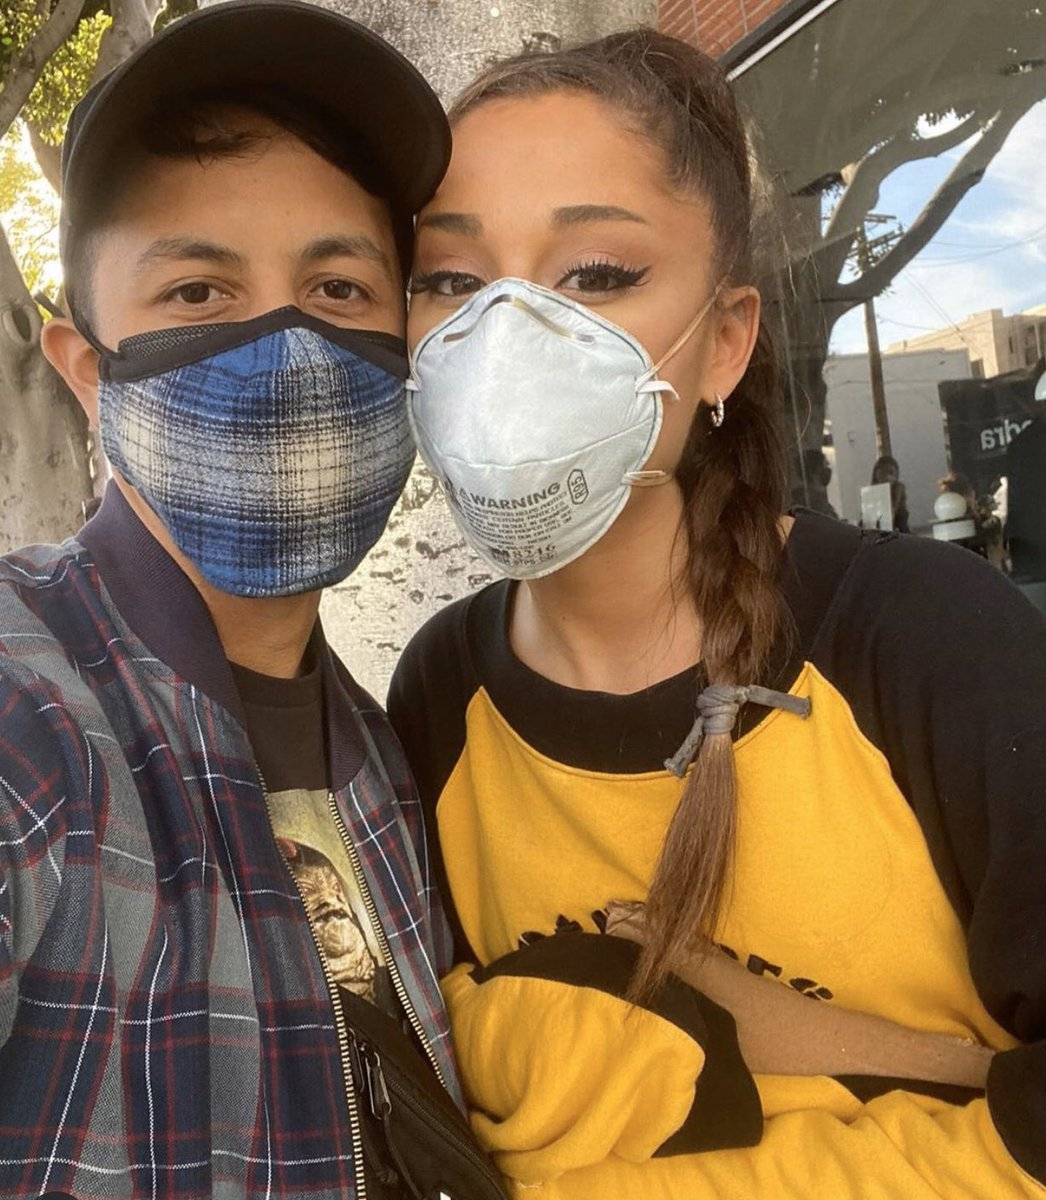 #Arianagrande while marching pic.twitter.com/7fCtAsGa2m